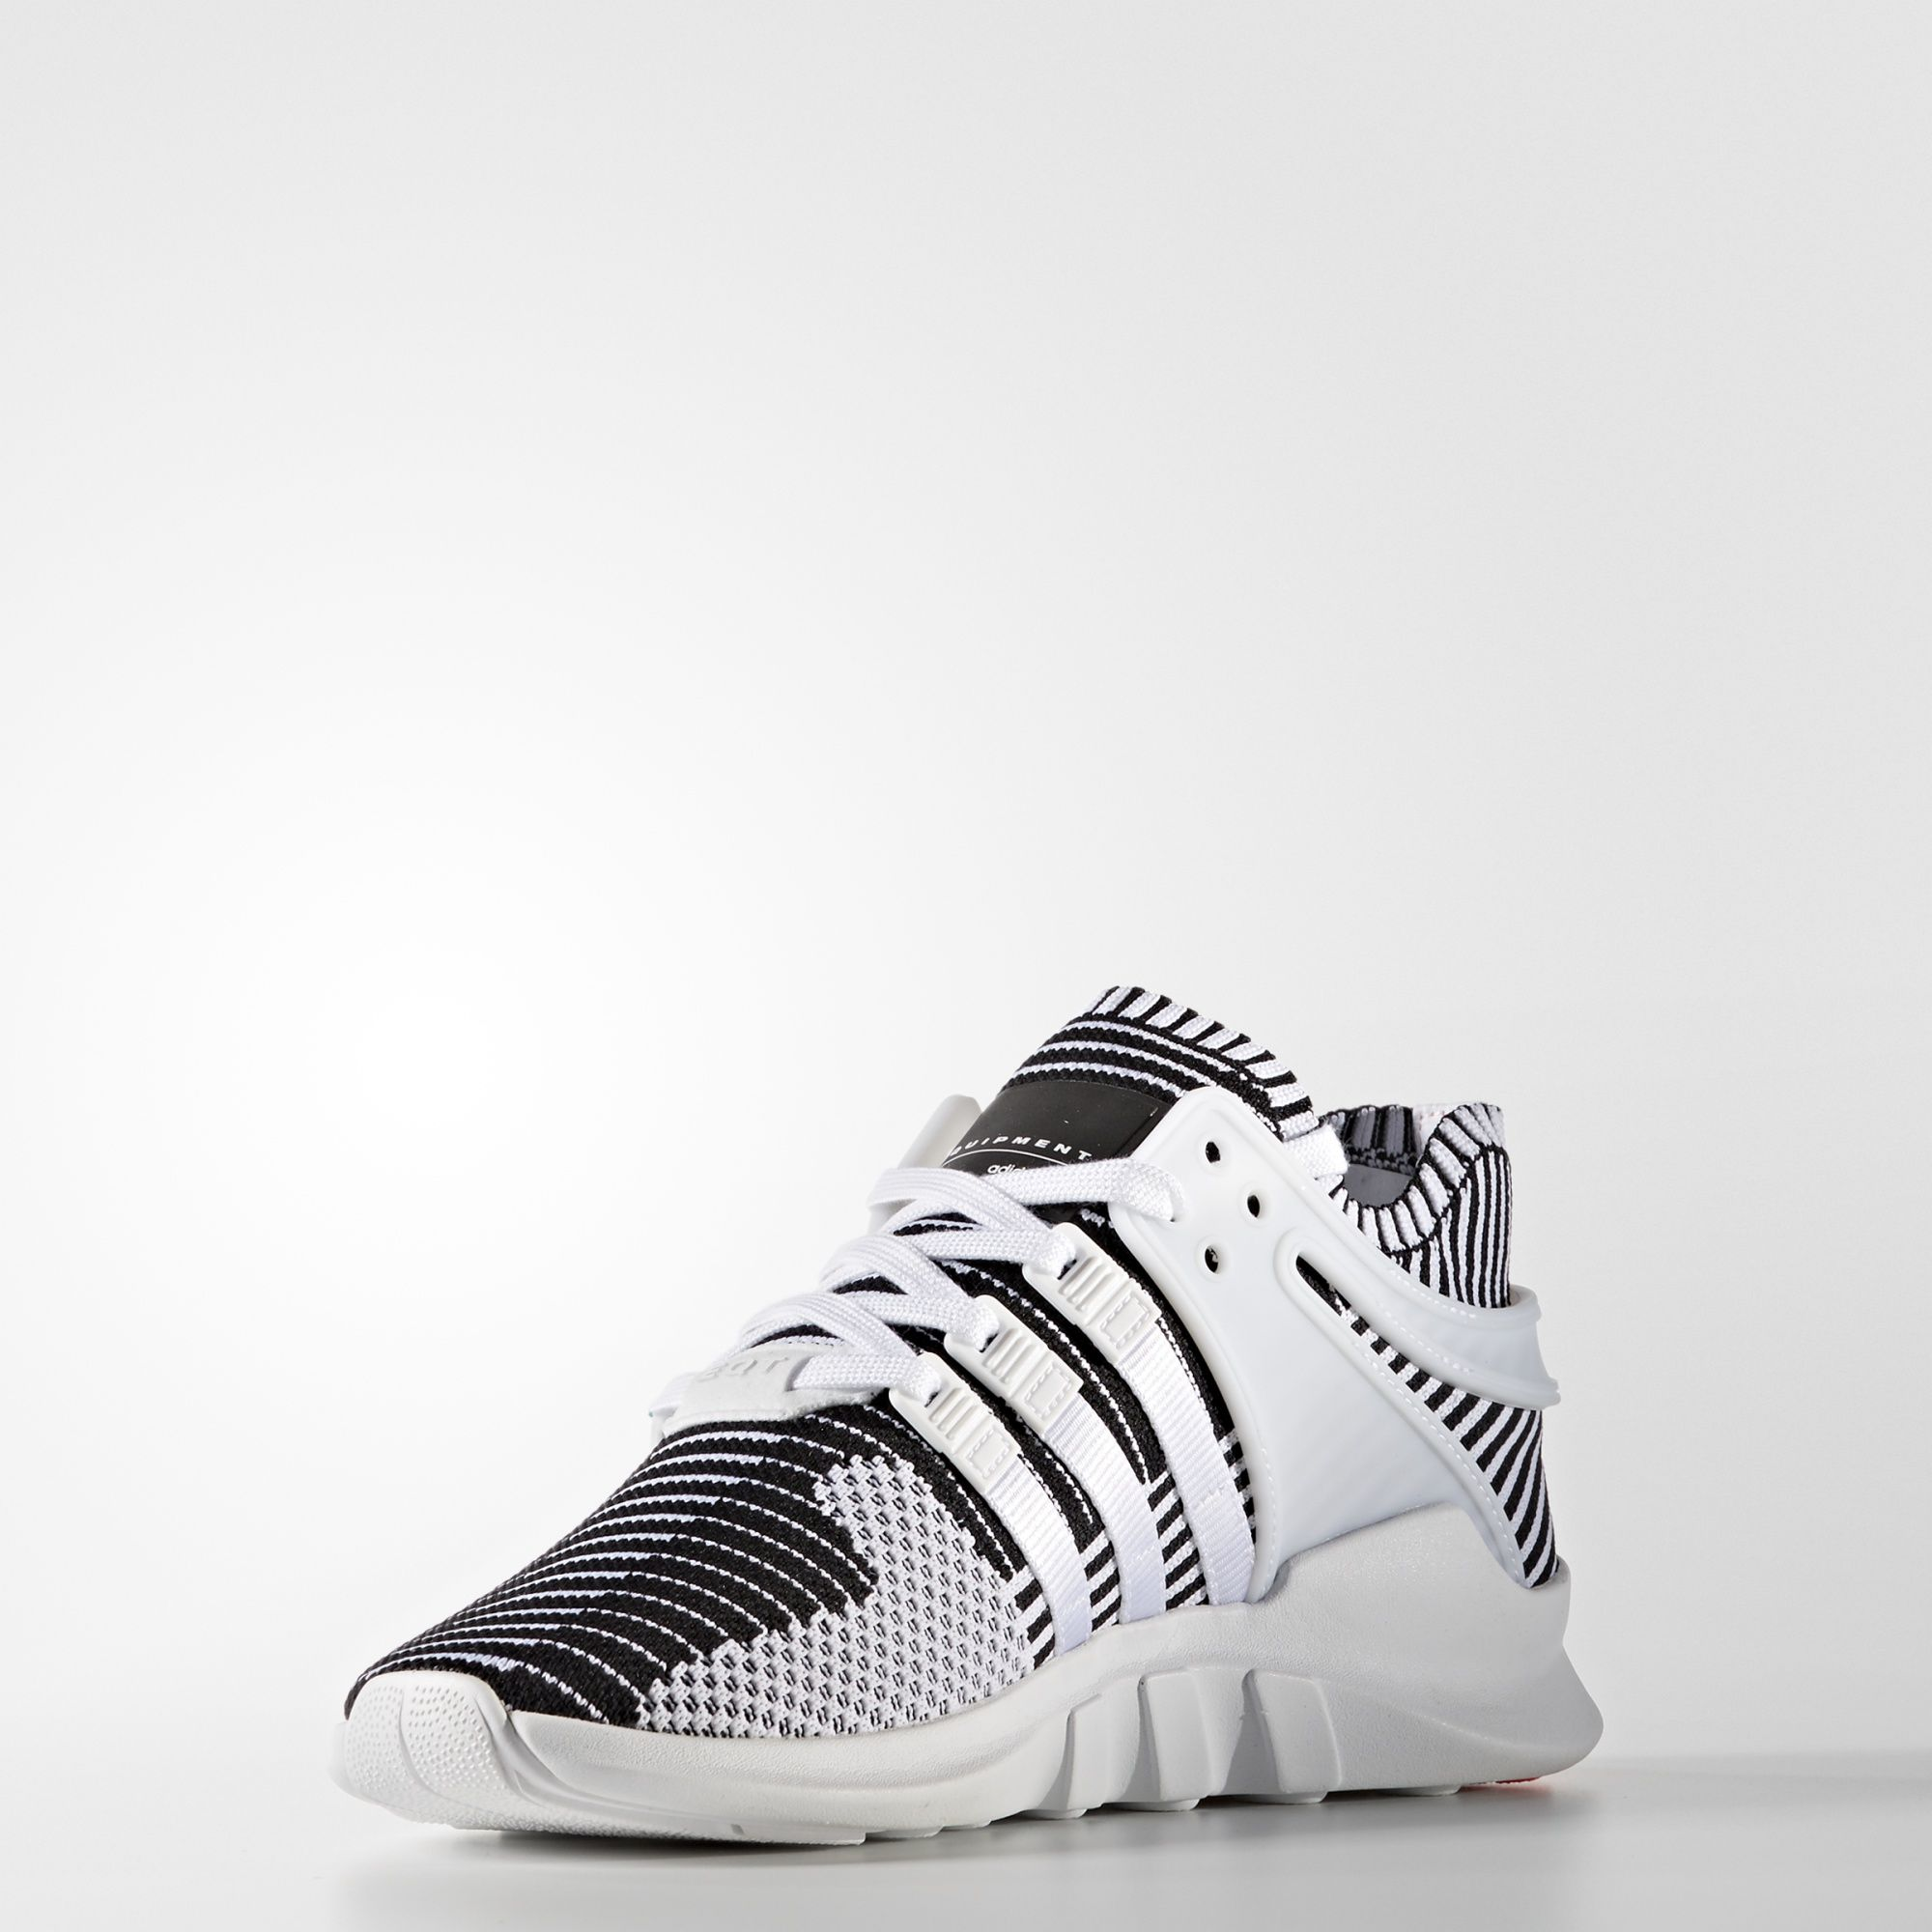 adidas EQT Support ADV Primeknit White Turbo Red BA7496 2